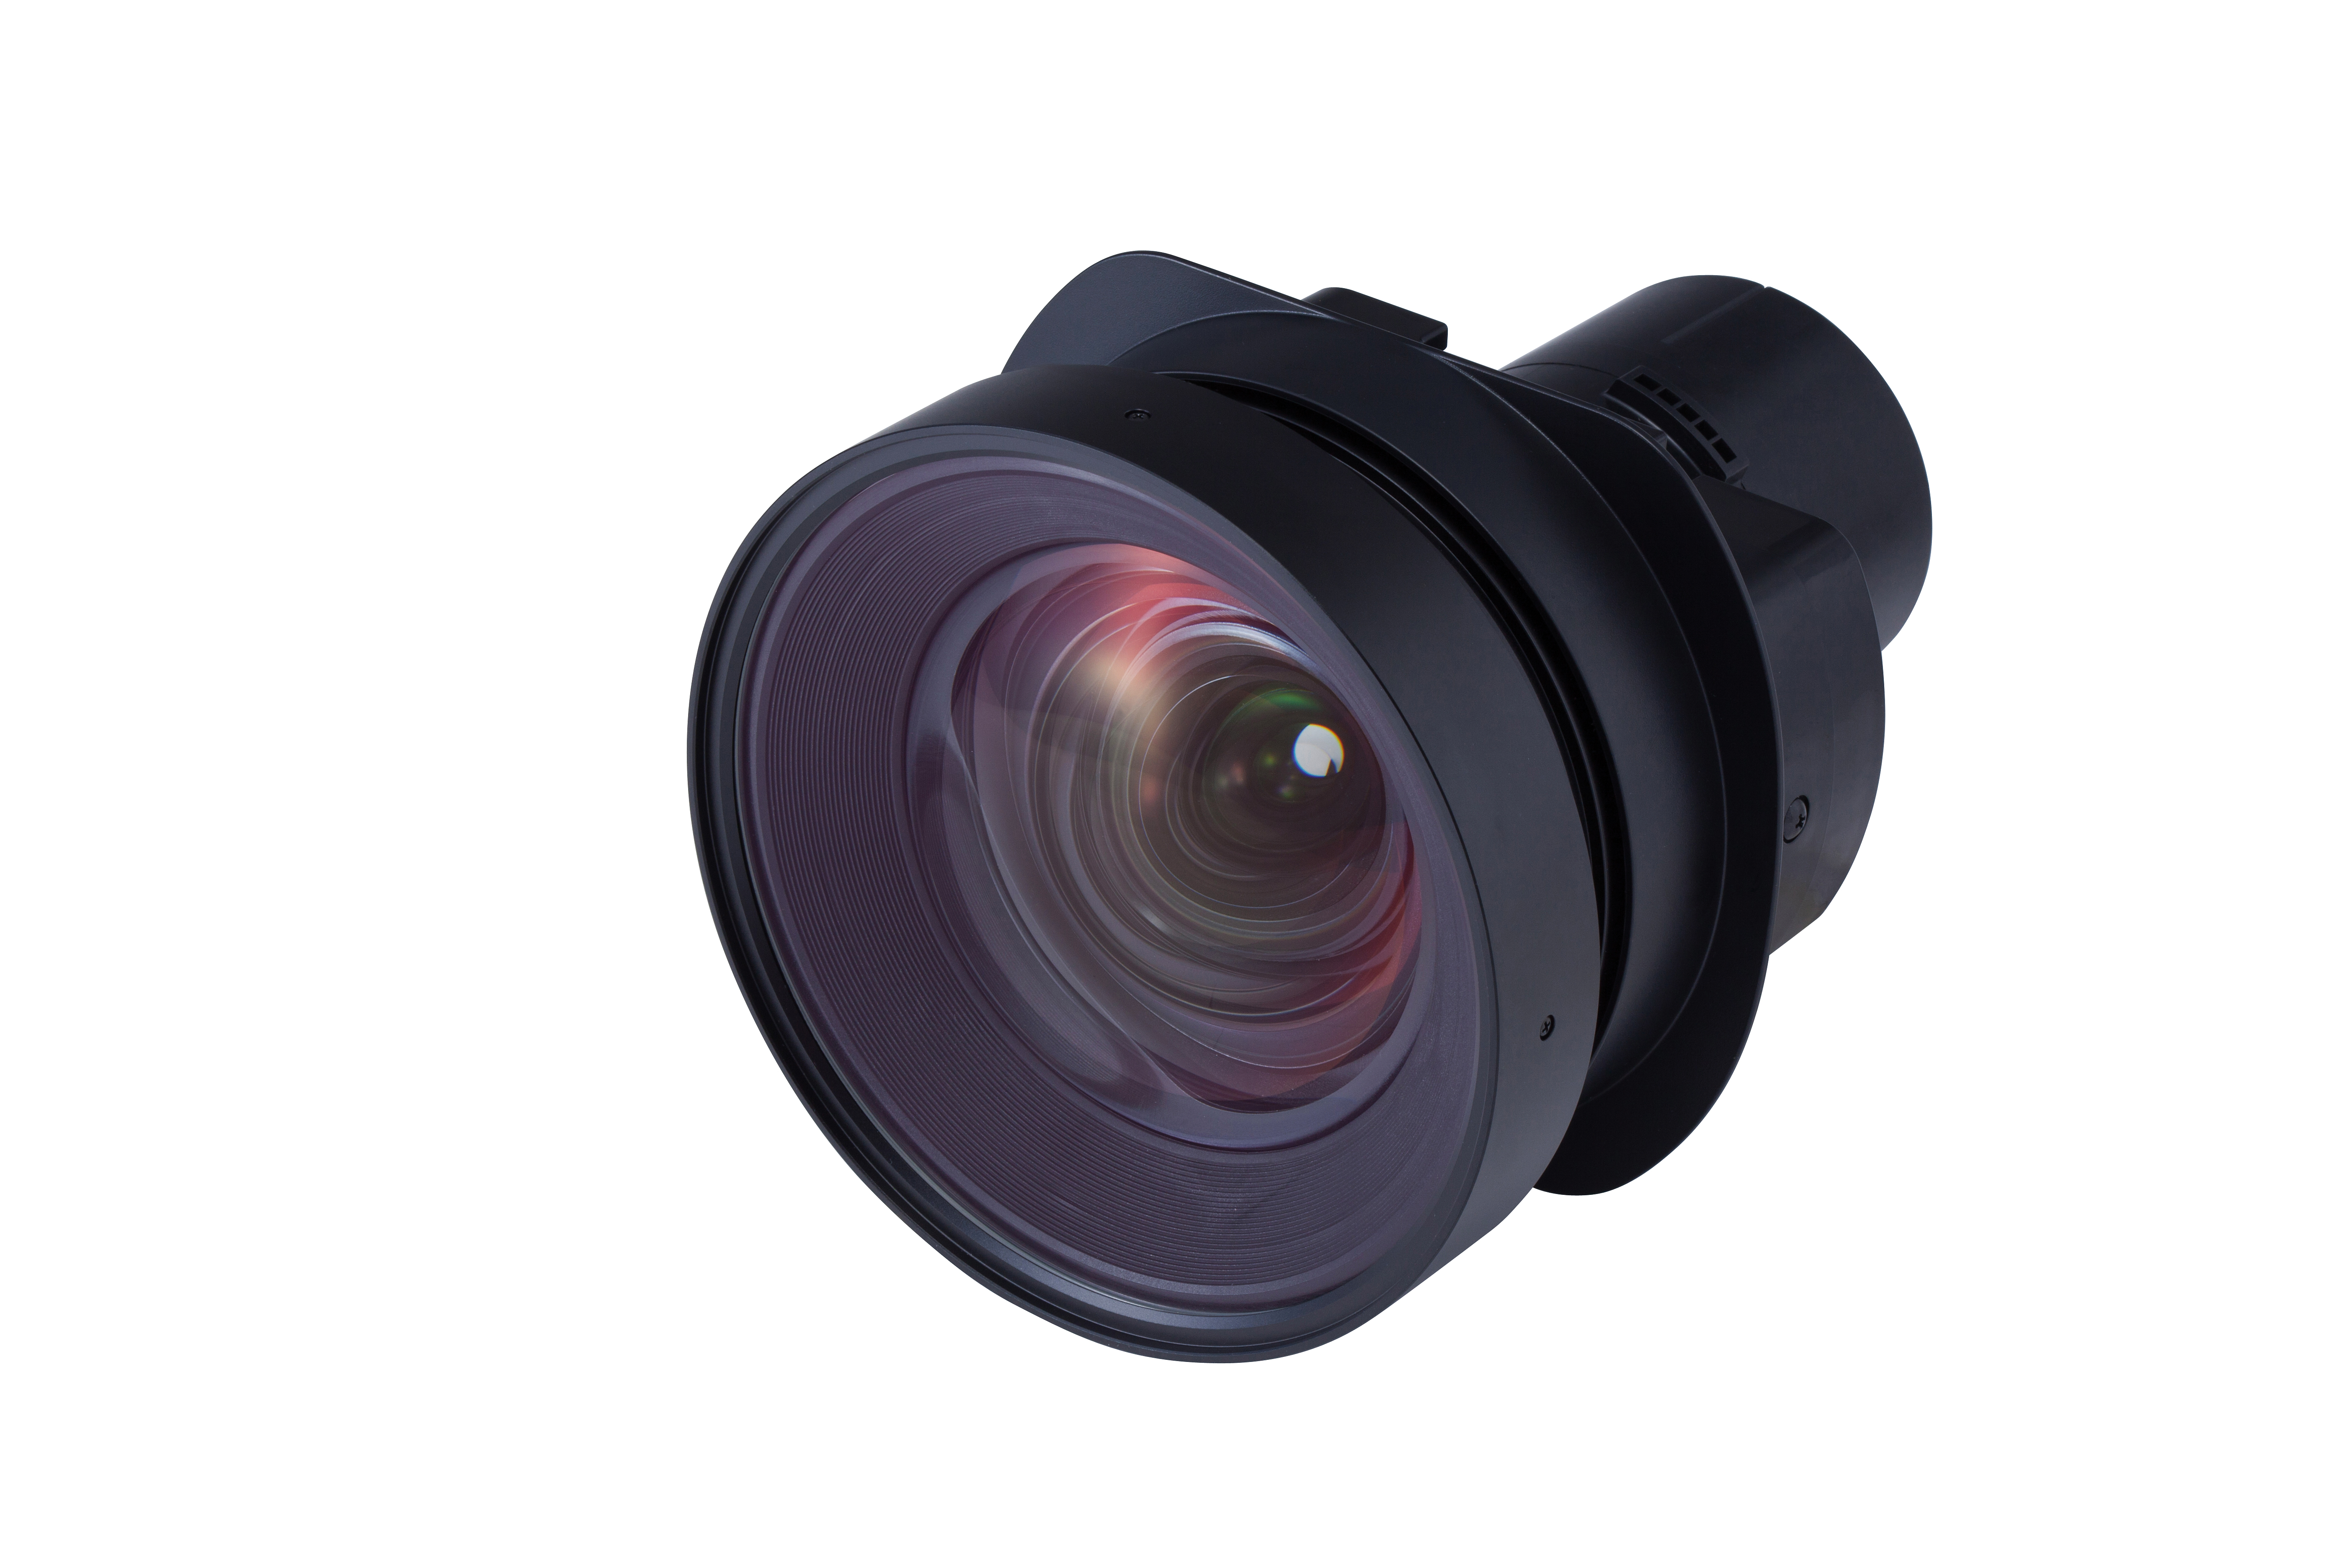 Ultra short throw lens, Zoom x 1.3